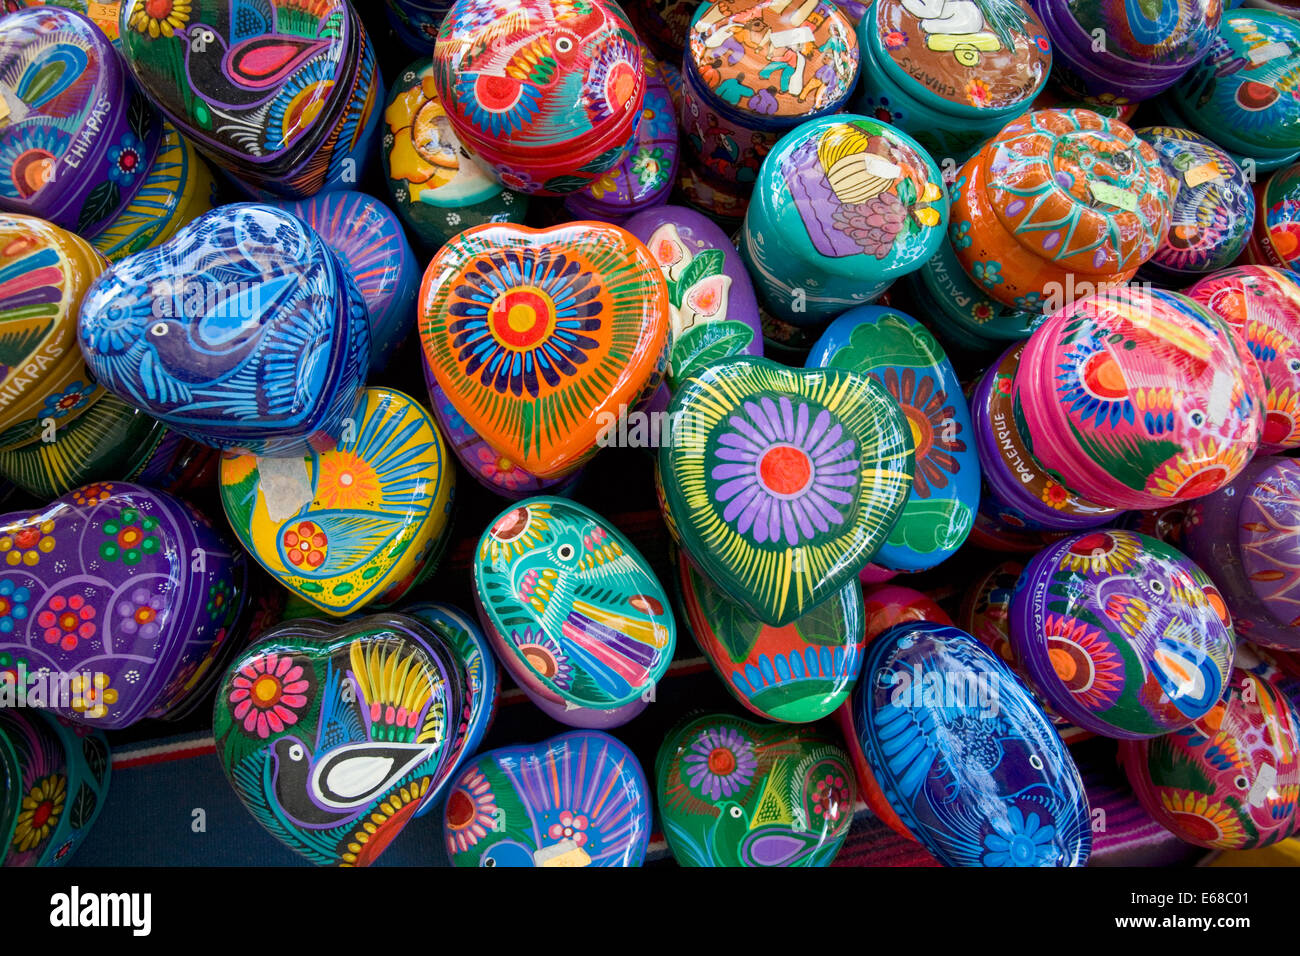 Hand painted jewelry cases for sale at a roadside stand near the Mayan ruins of Palenque, Chiapas, Mexico. - Stock Image